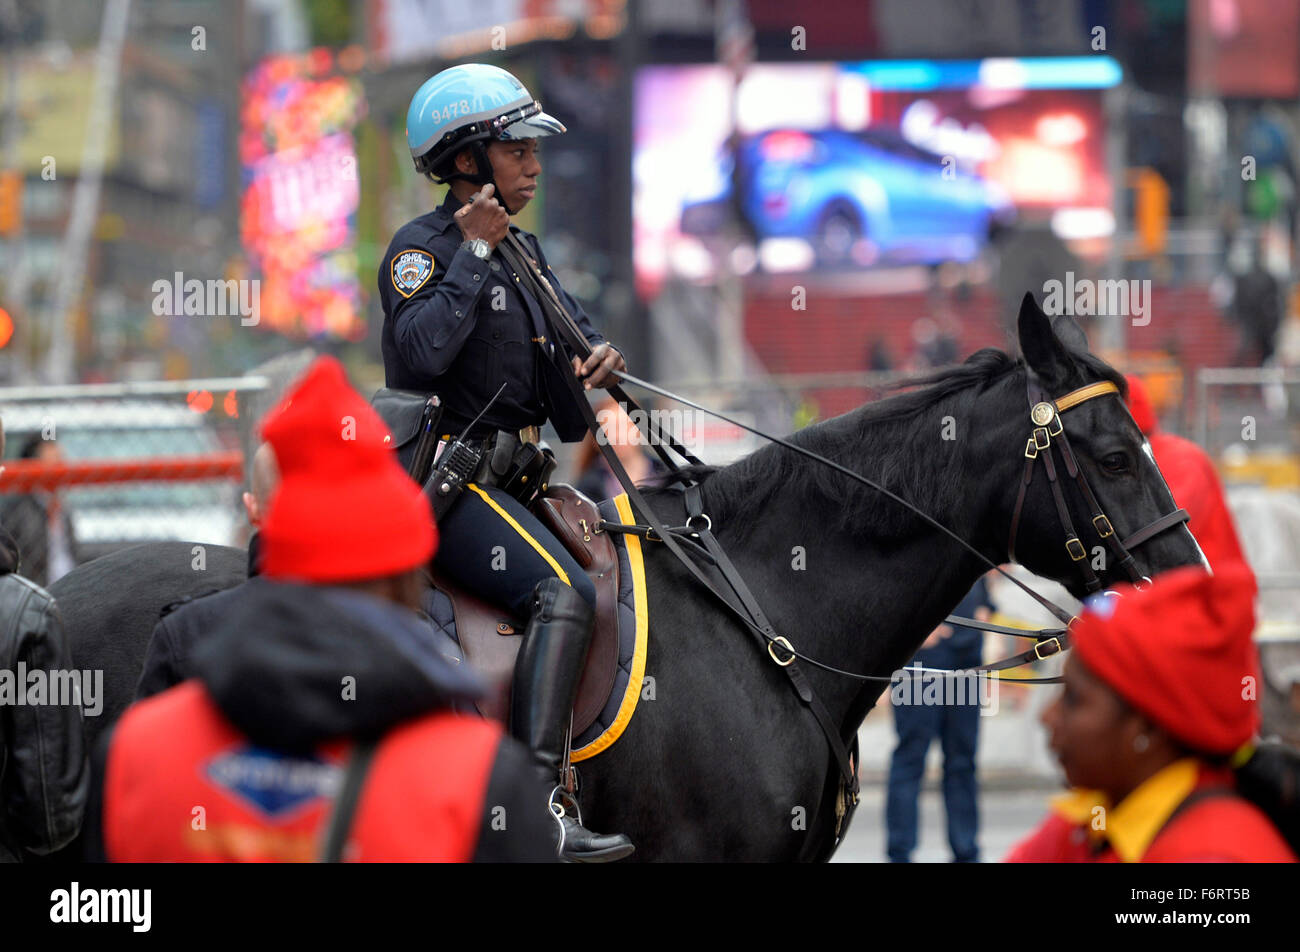 New York, USA. 19. November 2015. Ein Ranger Patrouillen an der New Yorker Time Square in der Times Square in Manhattan, Stockbild